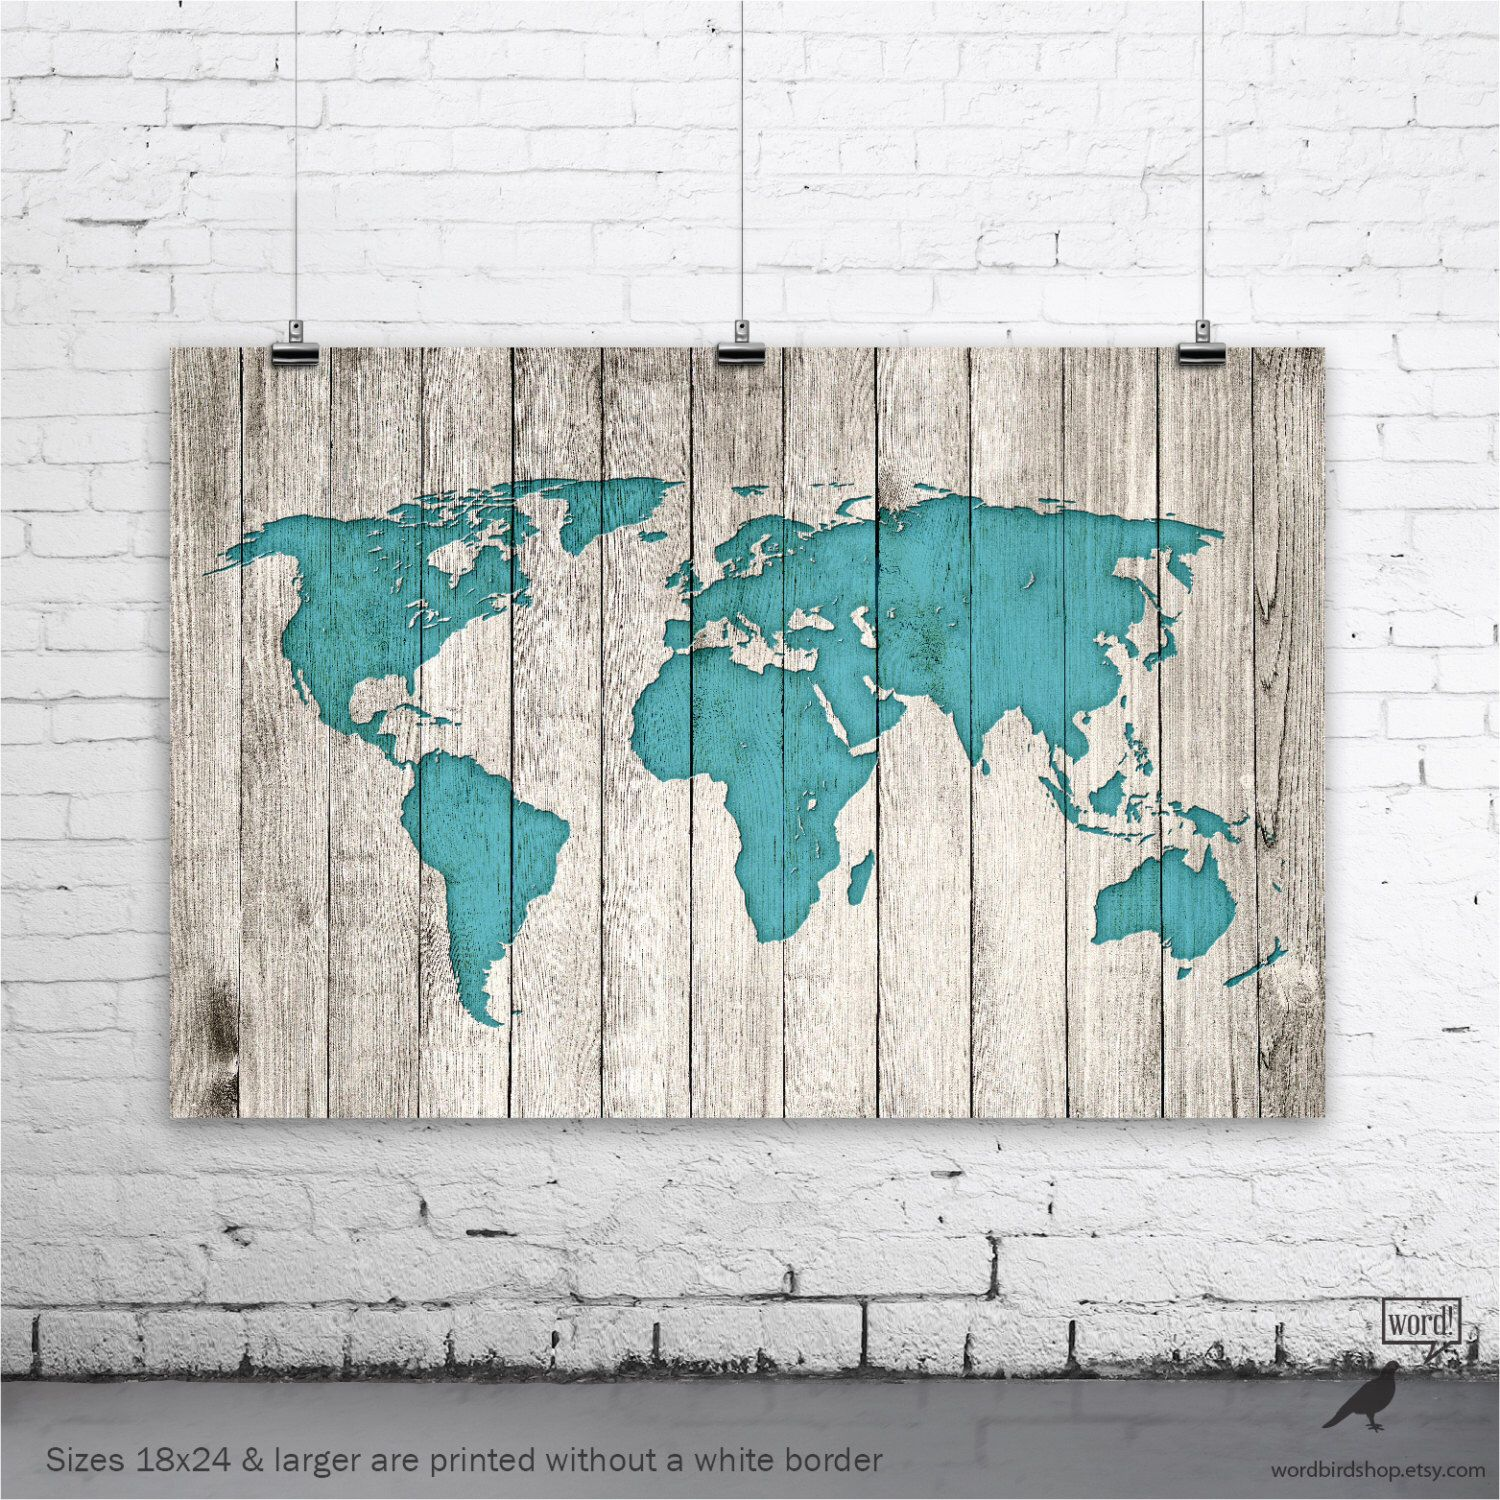 Rustic world map print large map of the world turquoise map on rustic world map print large map of the world turquoise map on wood look print dorm room decor travel decor nursery decor wood art by wordbirdshop on gumiabroncs Image collections